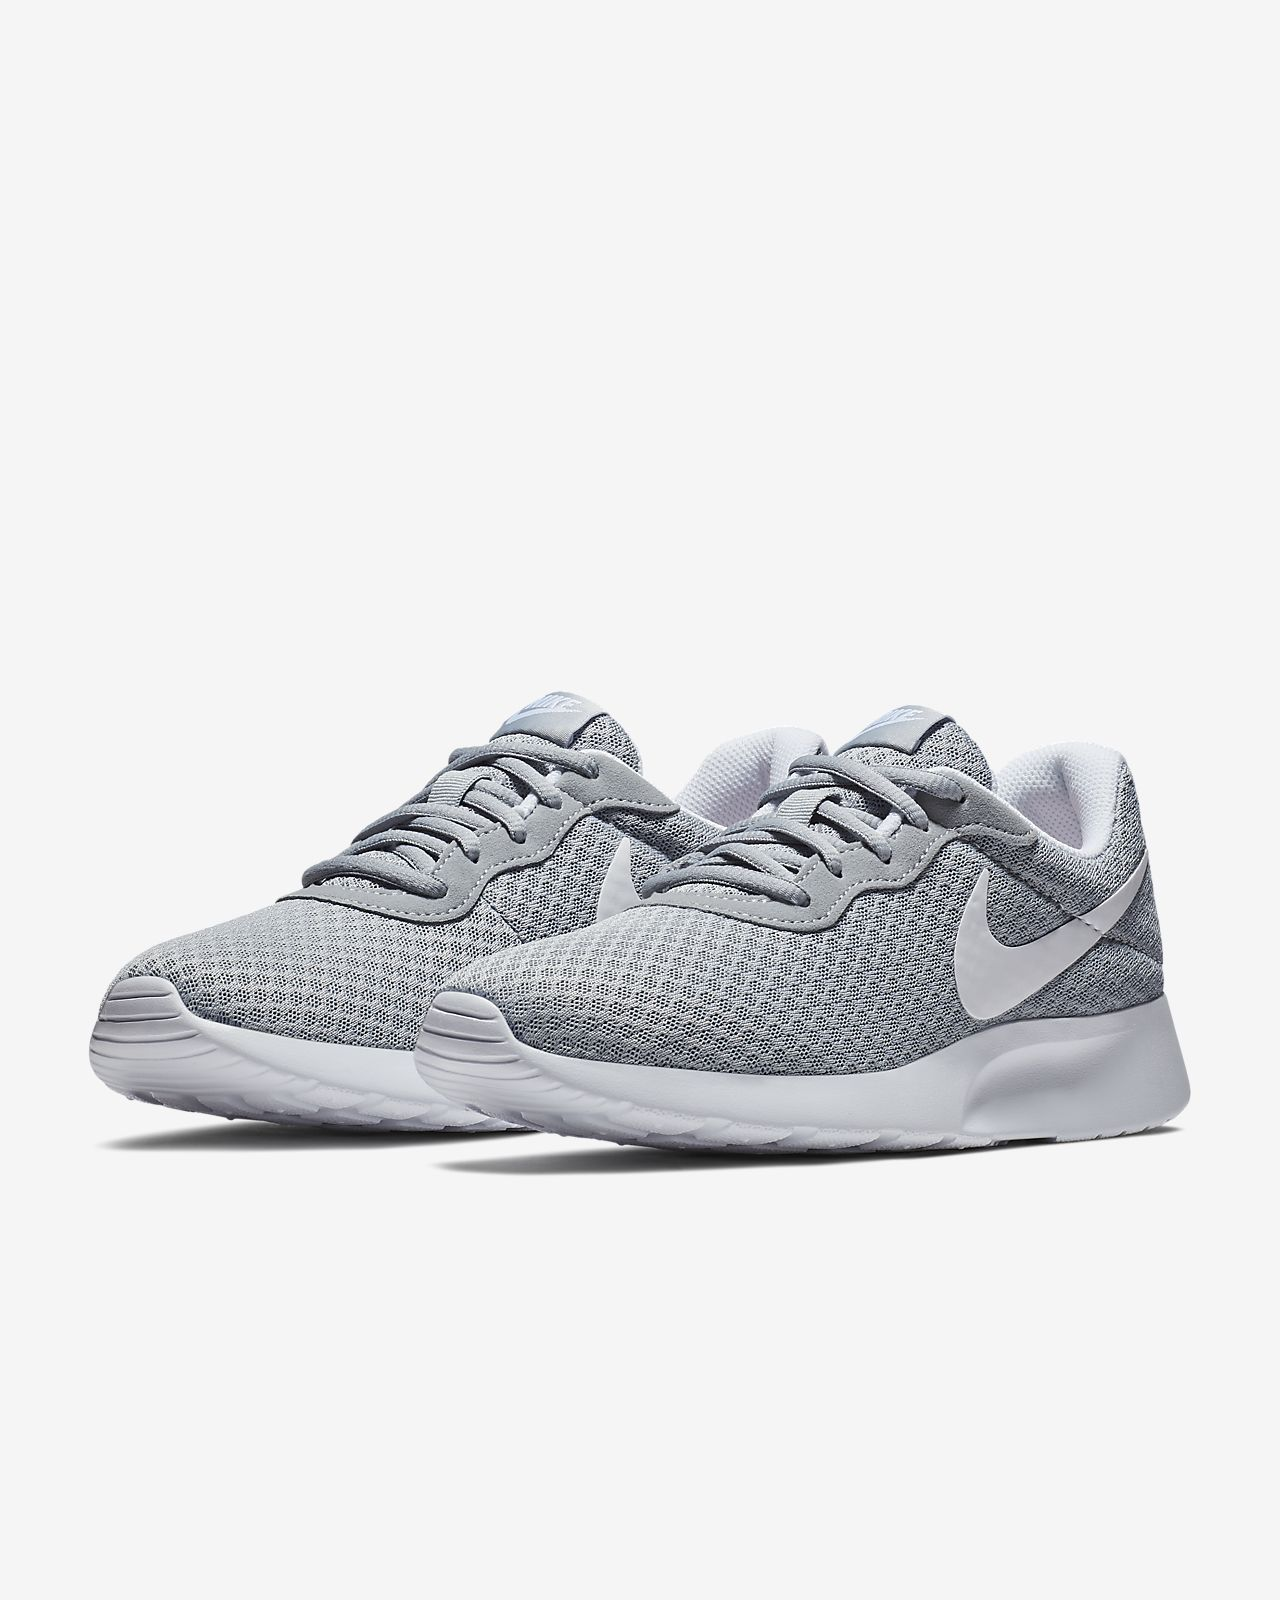 best loved 701ac 0168f ... Chaussure Nike Tanjun pour Femme